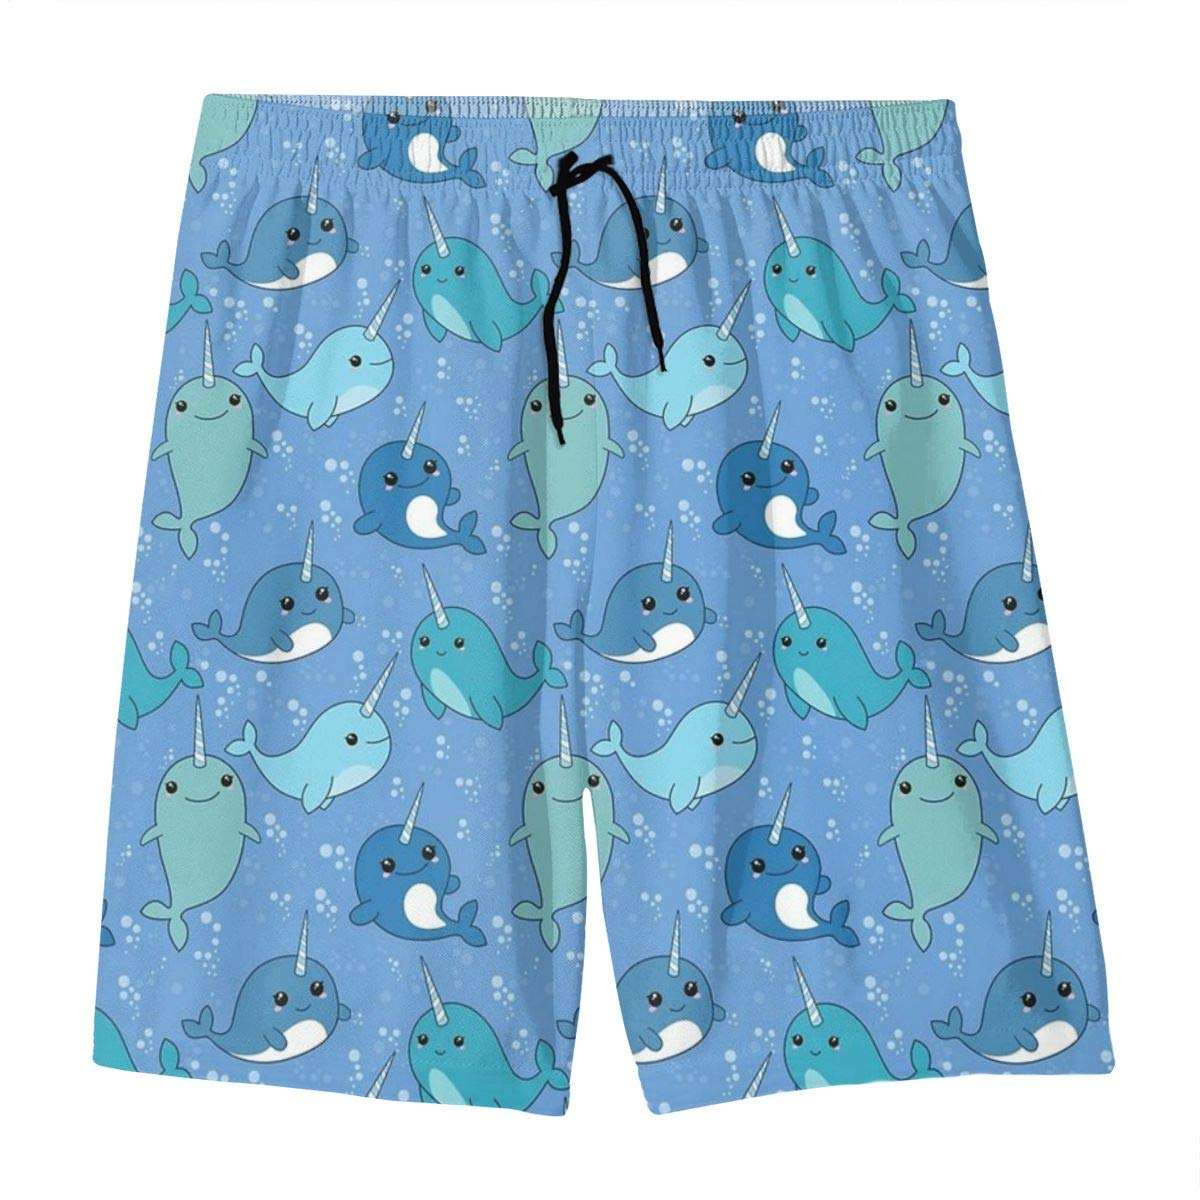 Narwhal Pattern Swim Trunks Beach Board Shorts Cool Novelty Bathing Suits for Teen Boys